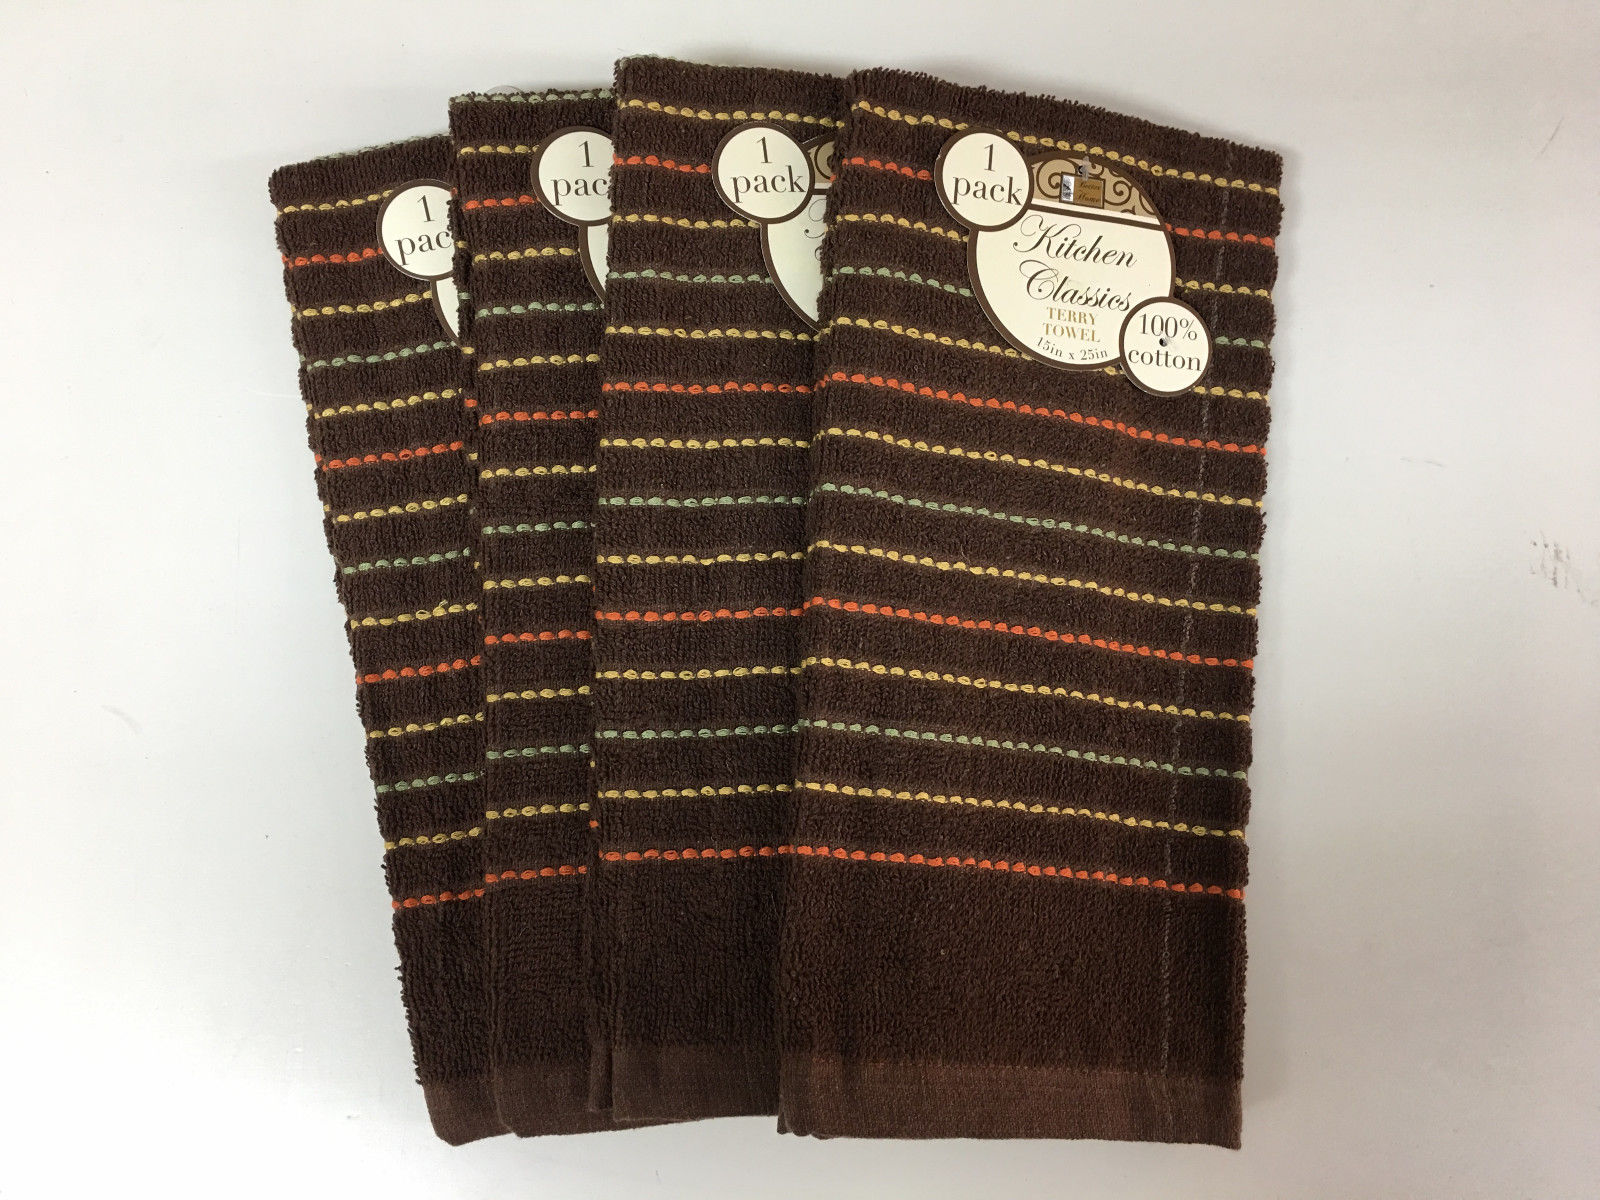 Set of 4 Cotton Striped Kitchen Dish Towels, Tea Towels, Brown by